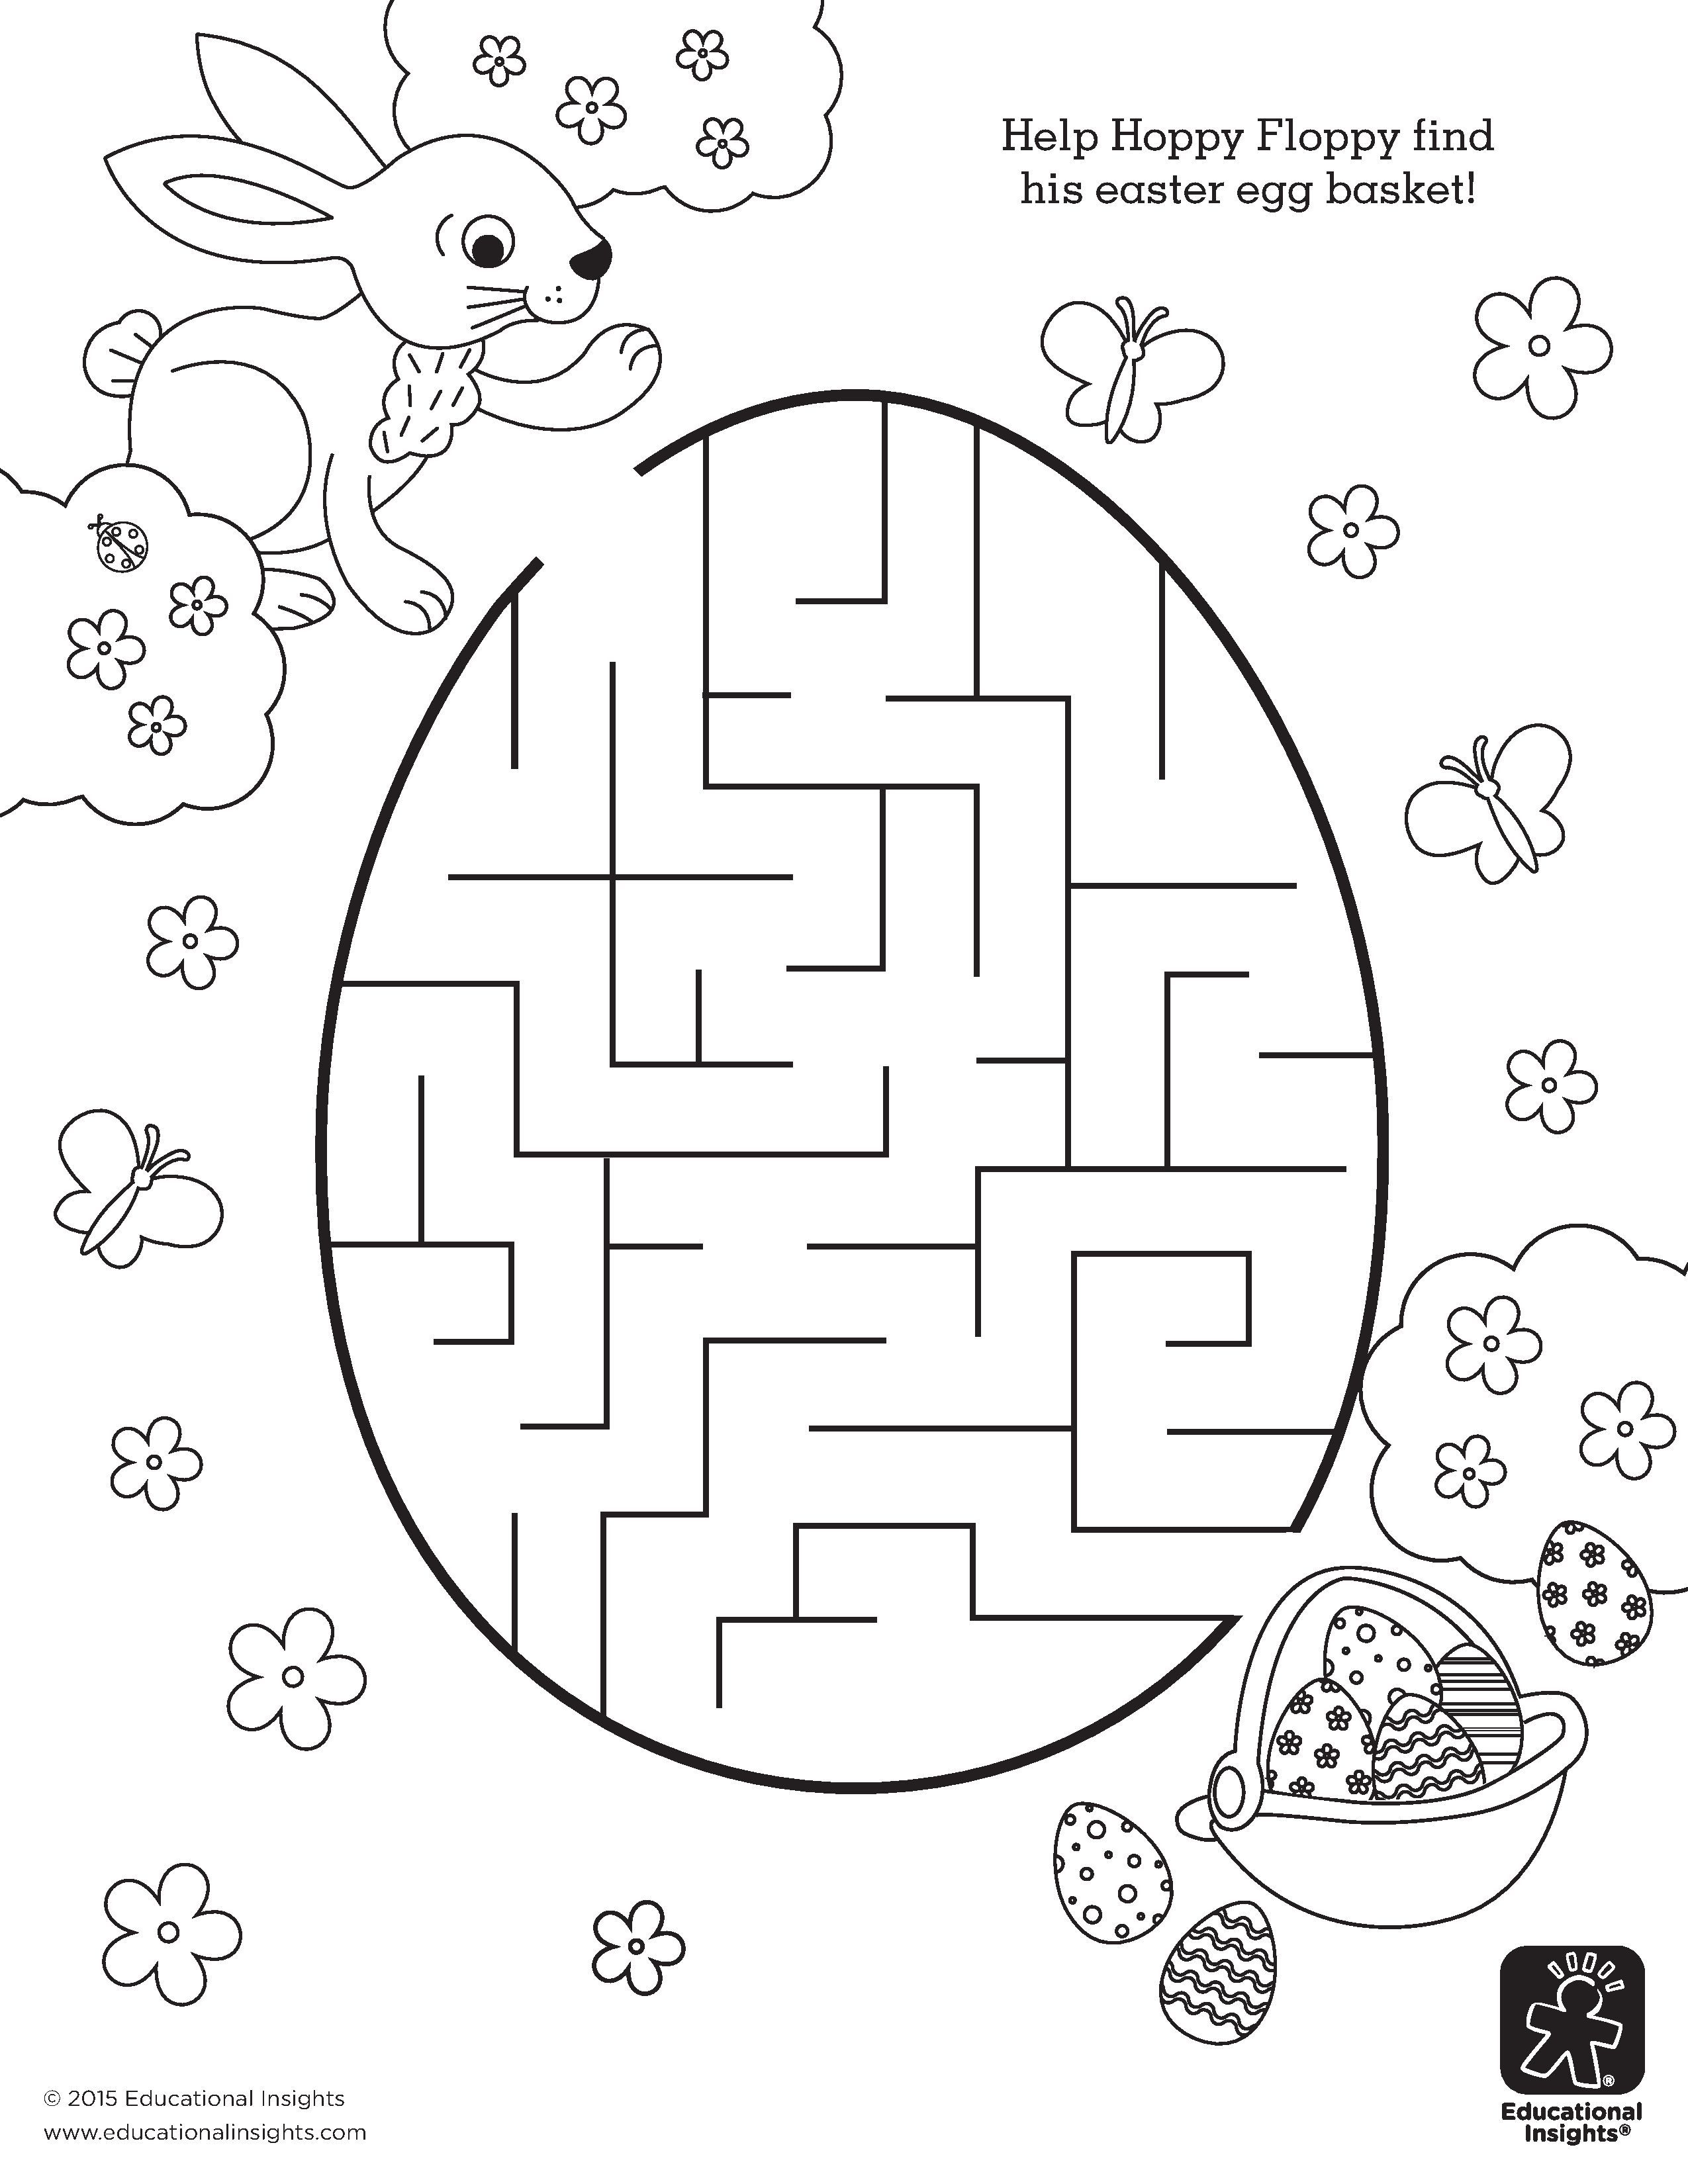 15 Printable Easter Coloring Pages Holiday Vault Easter Kids Easter Worksheets Easter Coloring Pages